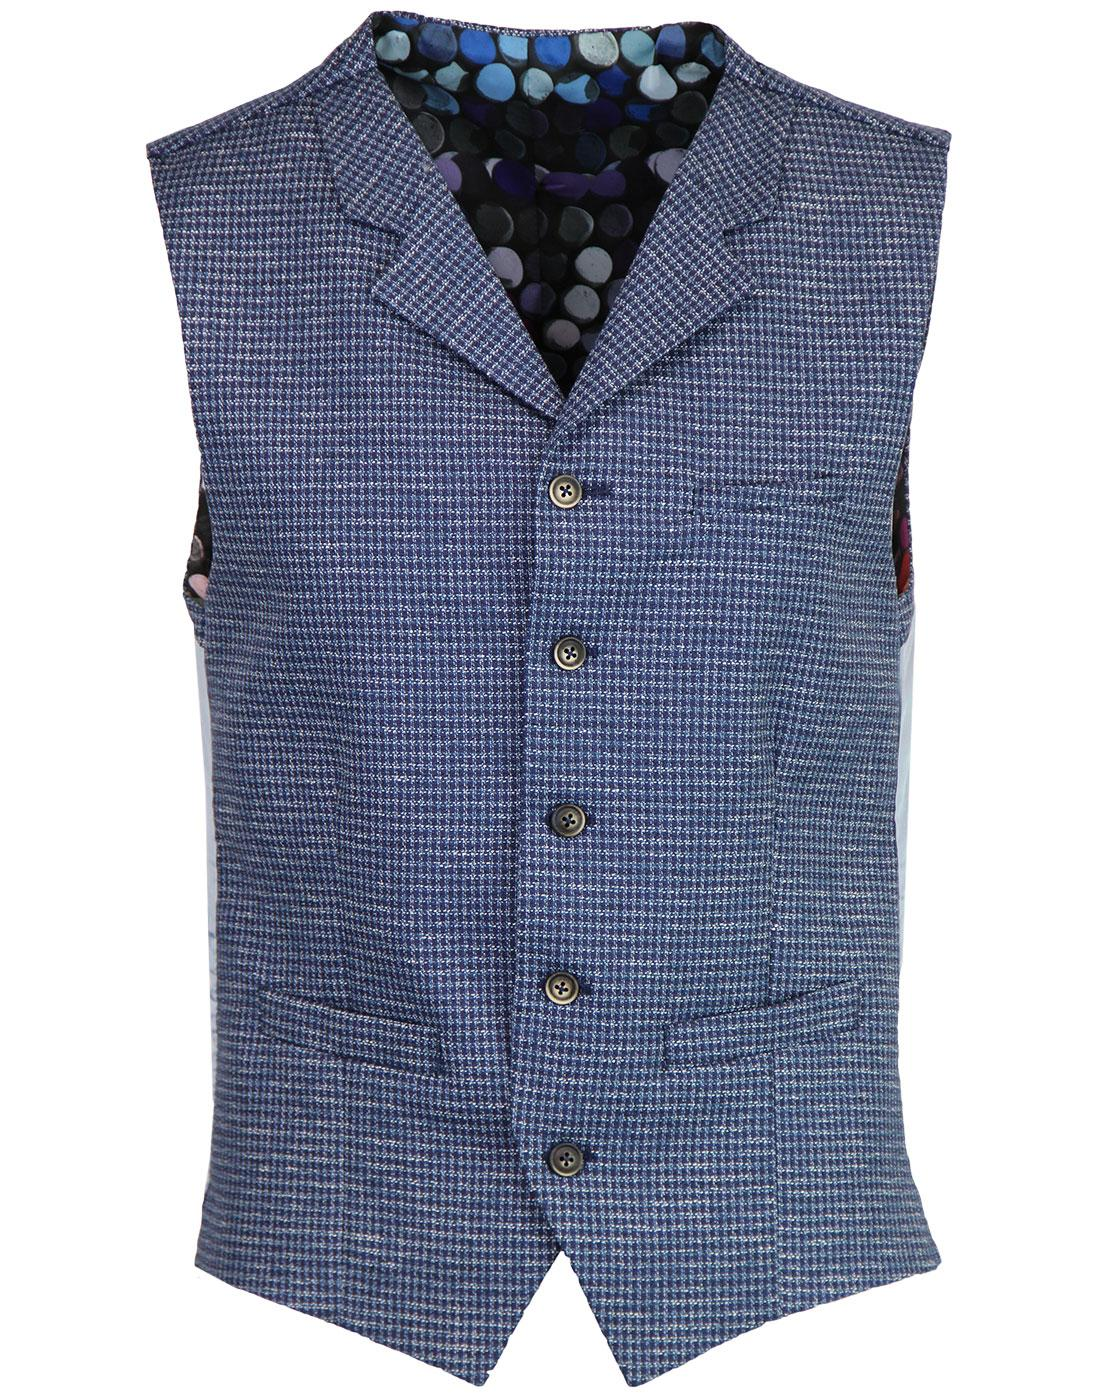 Tyburn GIBSON LONDON Dogtooth Seersucker Waistcoat